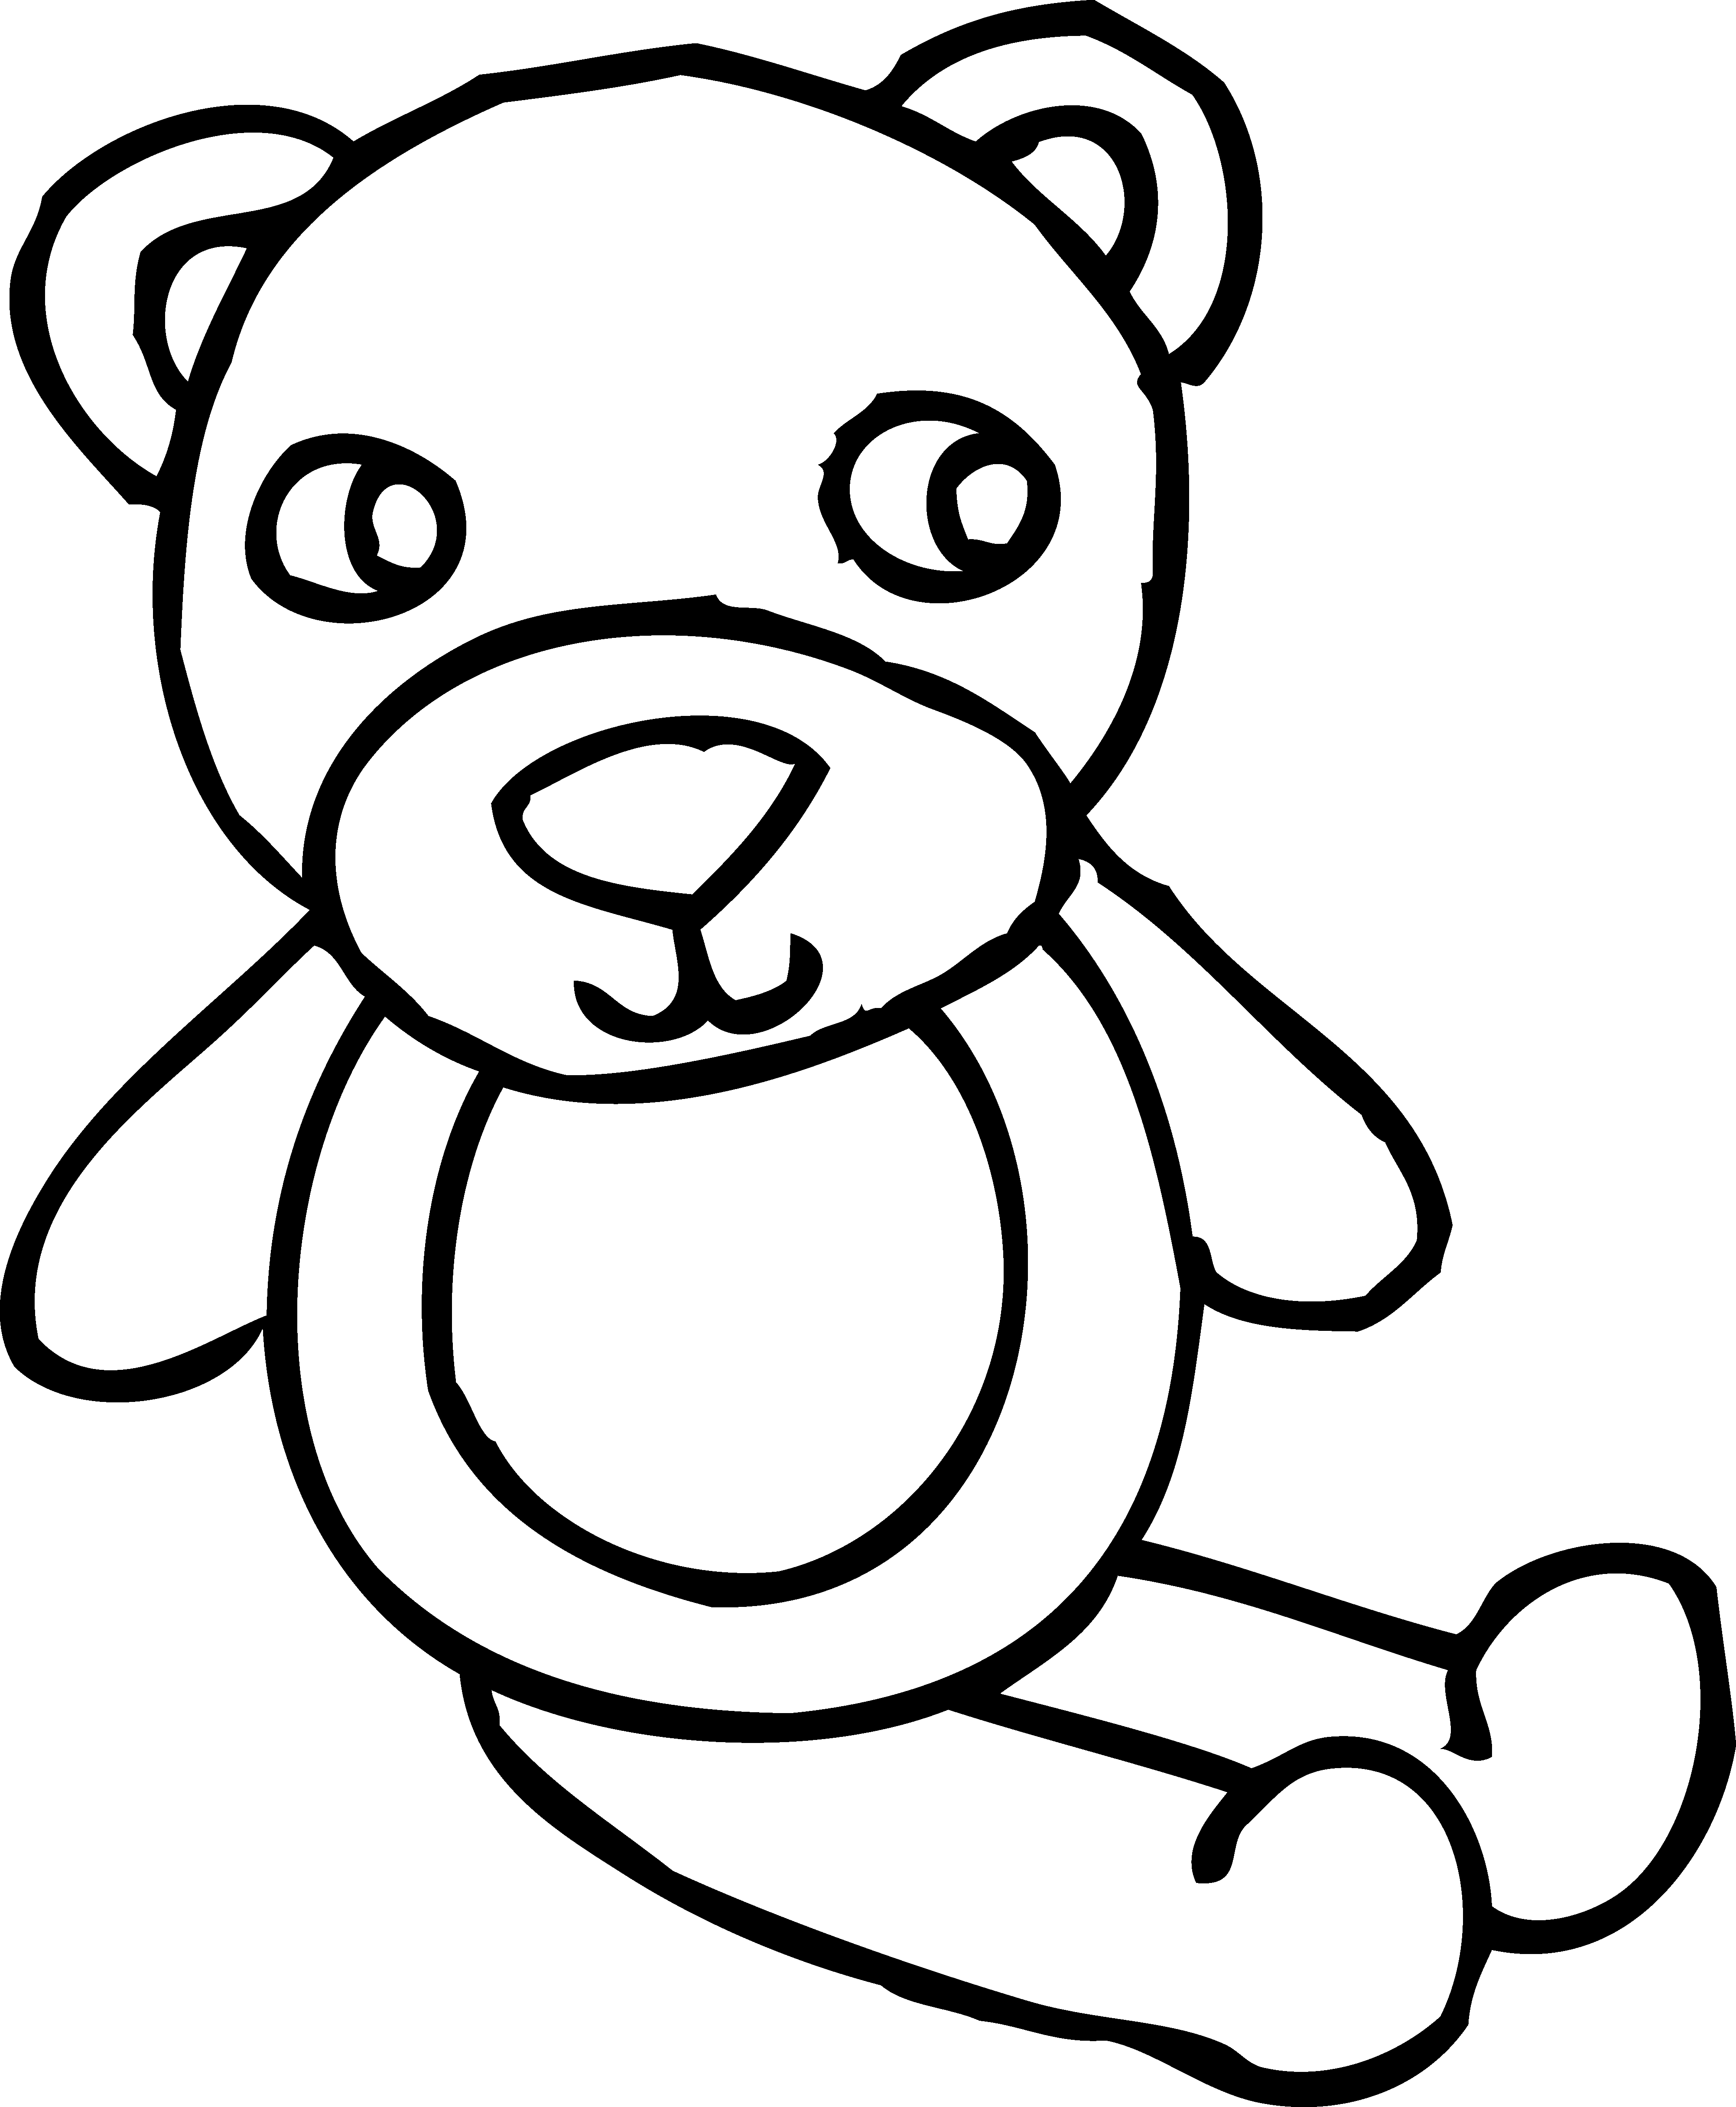 4006x4862 Teddy Bear Toy Coloring Page